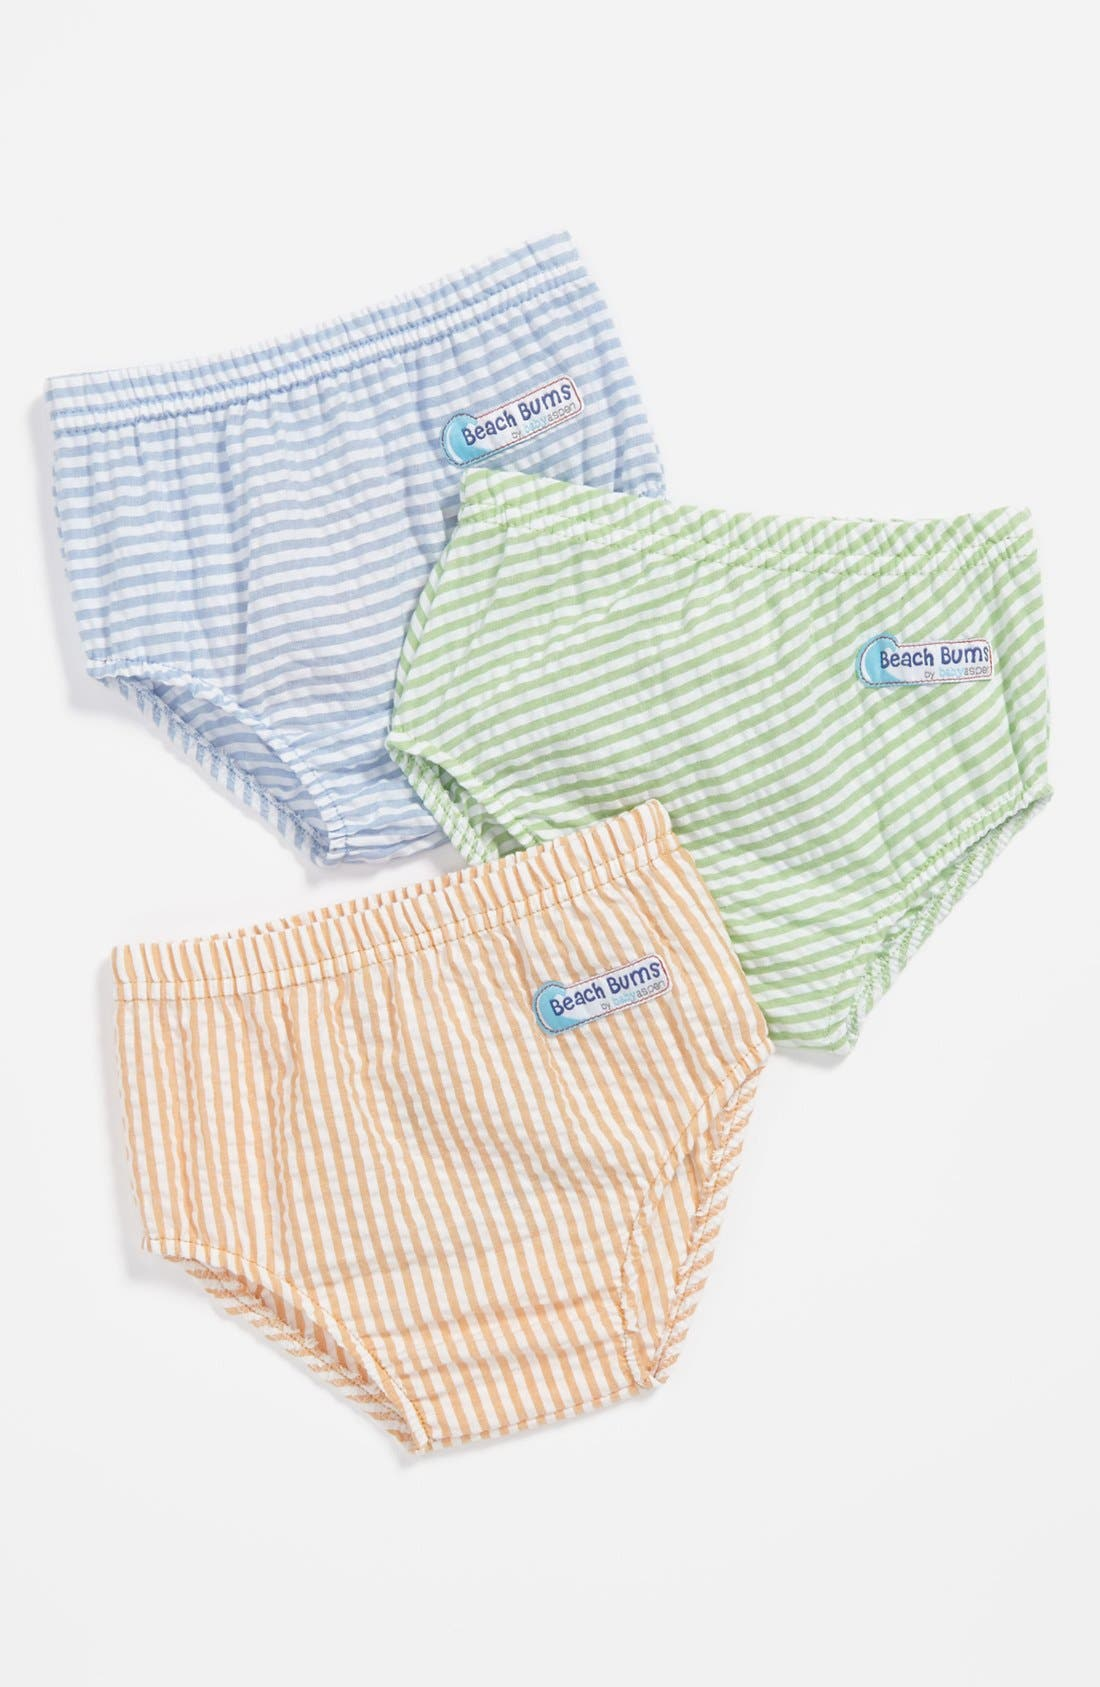 Alternate Image 2  - Baby Aspen 'Beach Bums' Diaper Covers (3-Pack) (Baby)